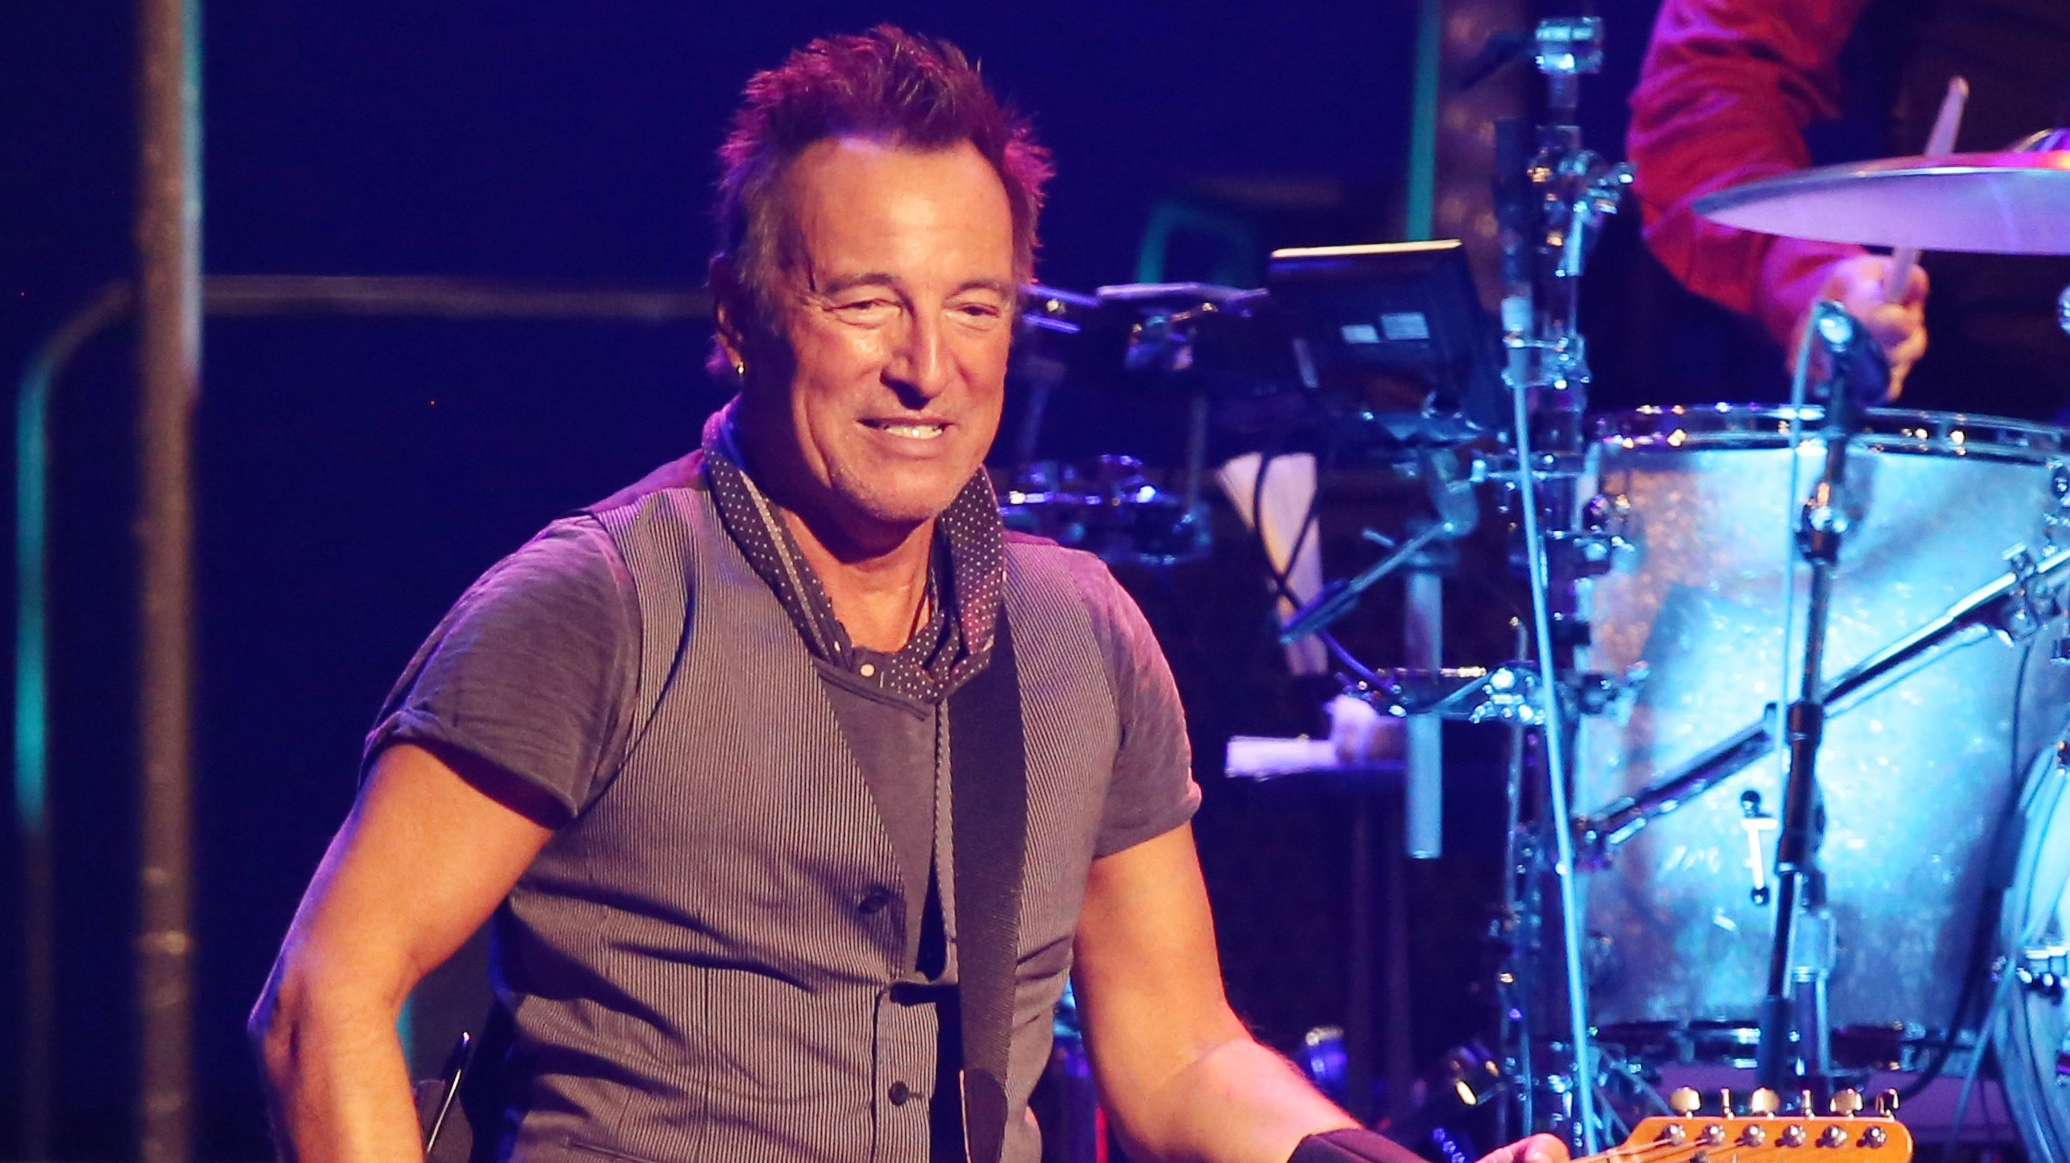 Bruce Springsteen and the E-Street Band concert, Los Angeles Memorial Sports Arena, Los Angeles, America - 17 Mar 2016